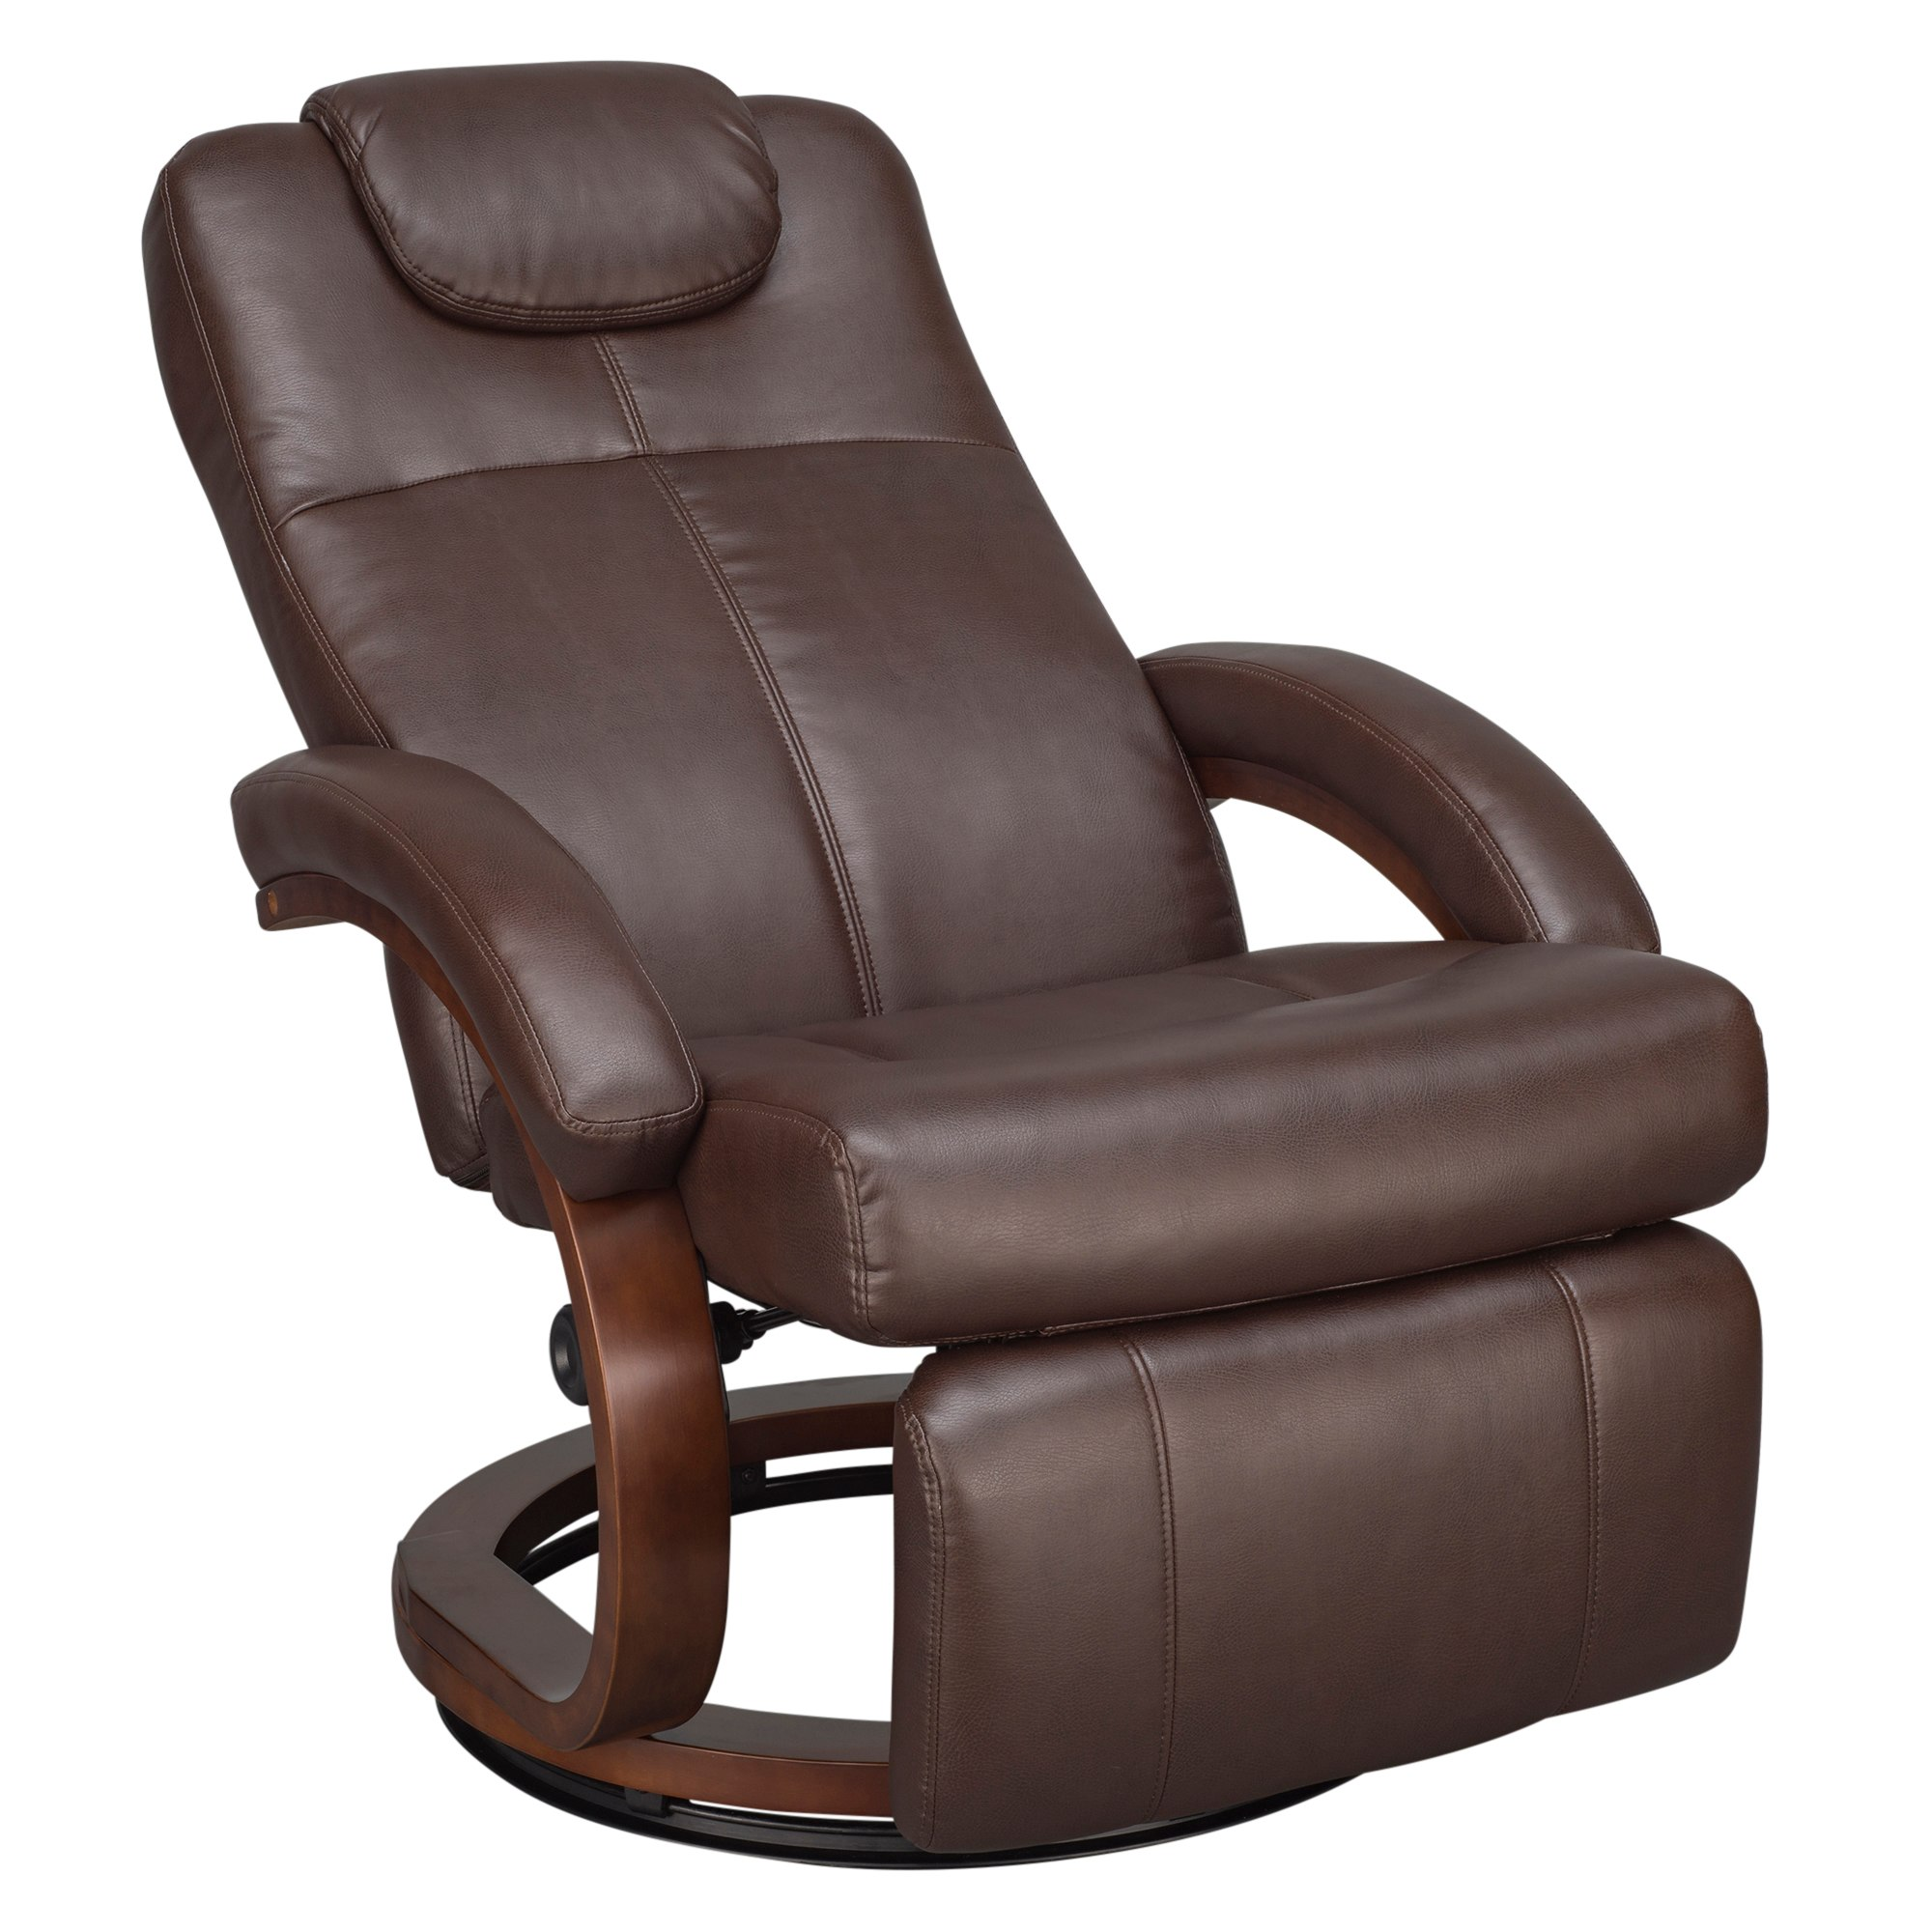 euro recliner chair outdoor chairs on sale recpro charles 28 rv modern furniture design mahogany